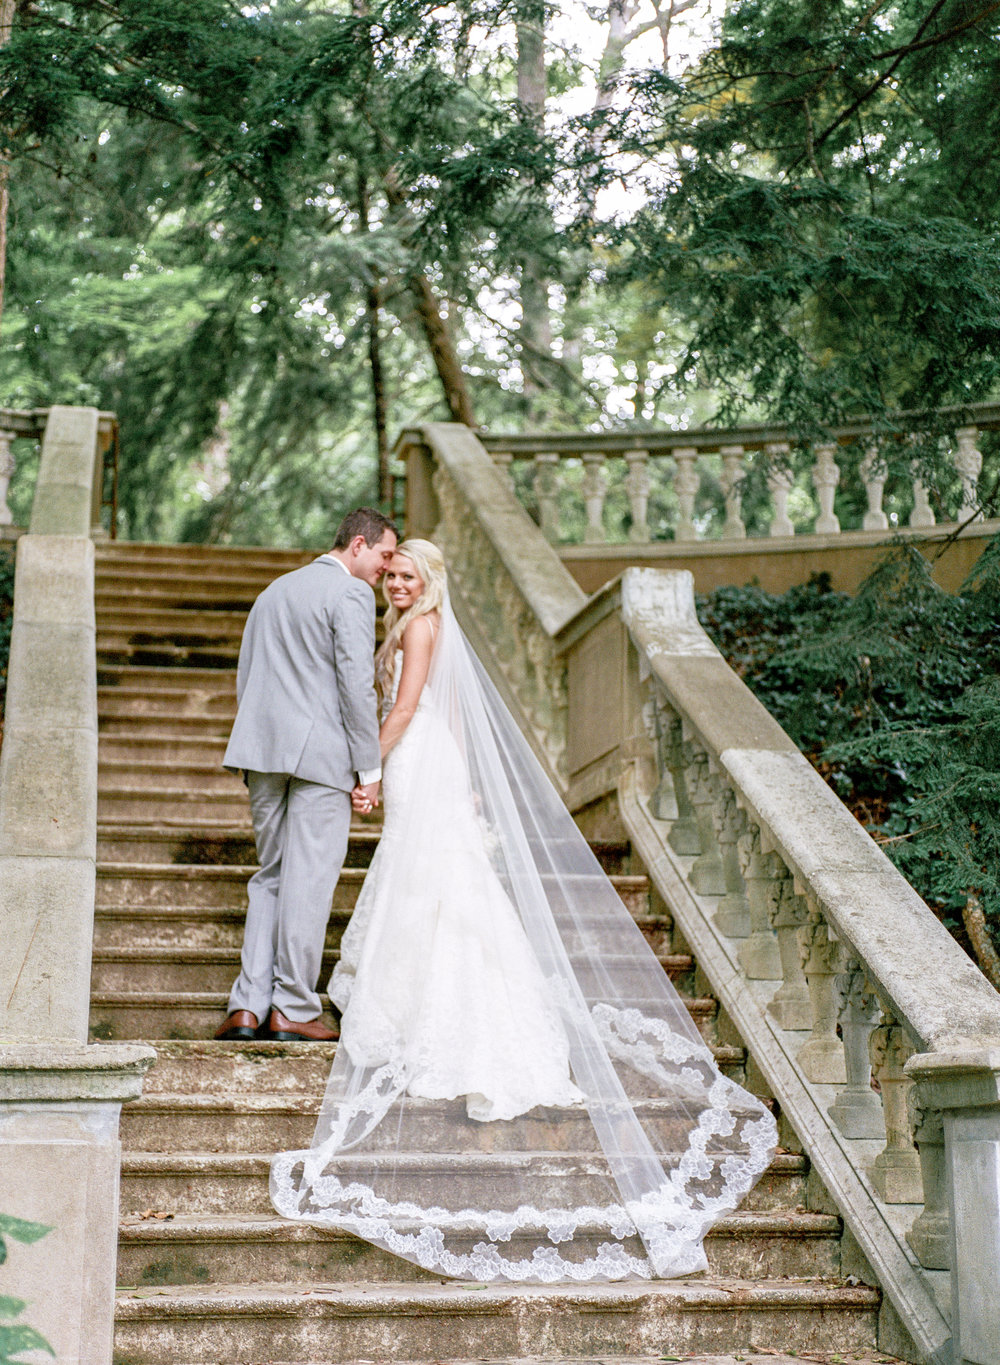 LIZ & NICK - ATLANTA, GEORGIA